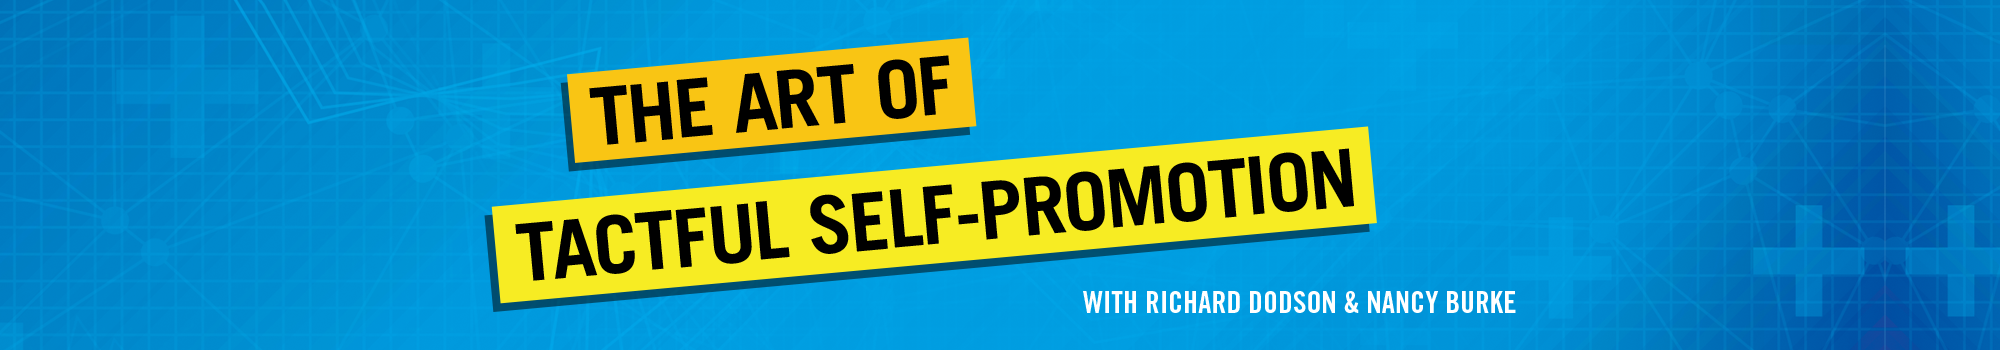 Tactful Self Promotion_Home Page Banner 1